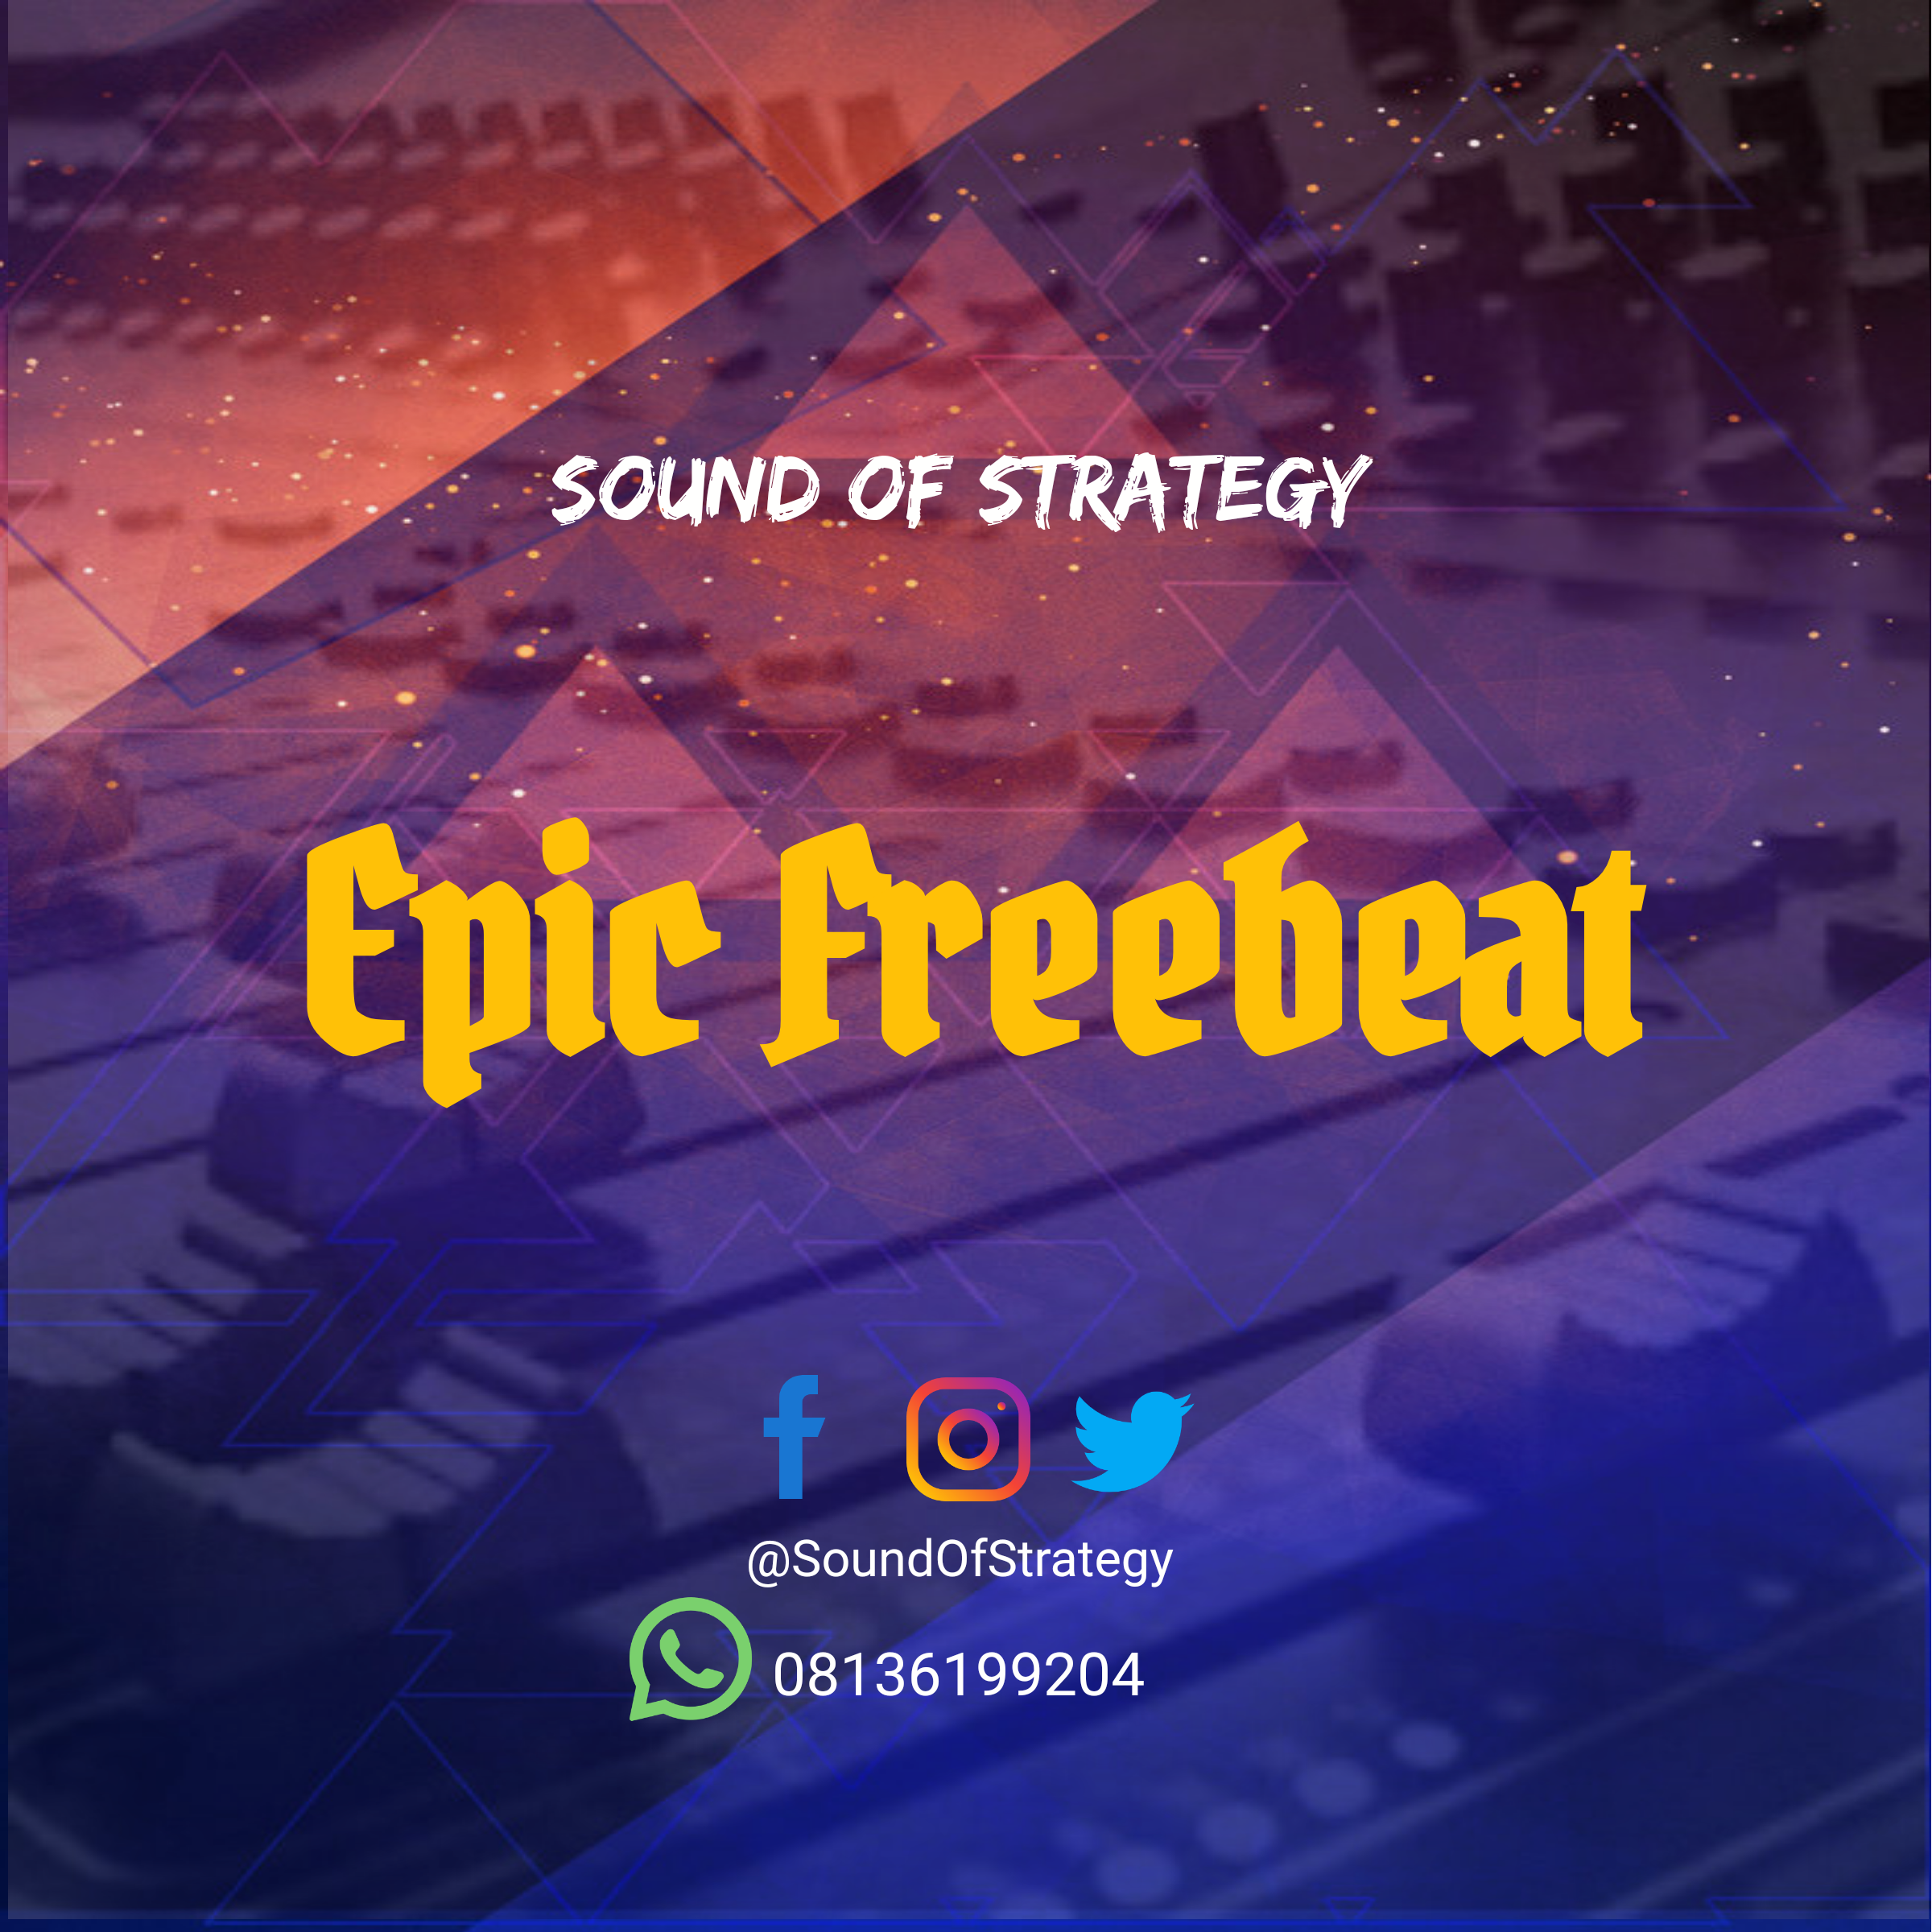 FREE BEAT: Sound of Strategy - Epic